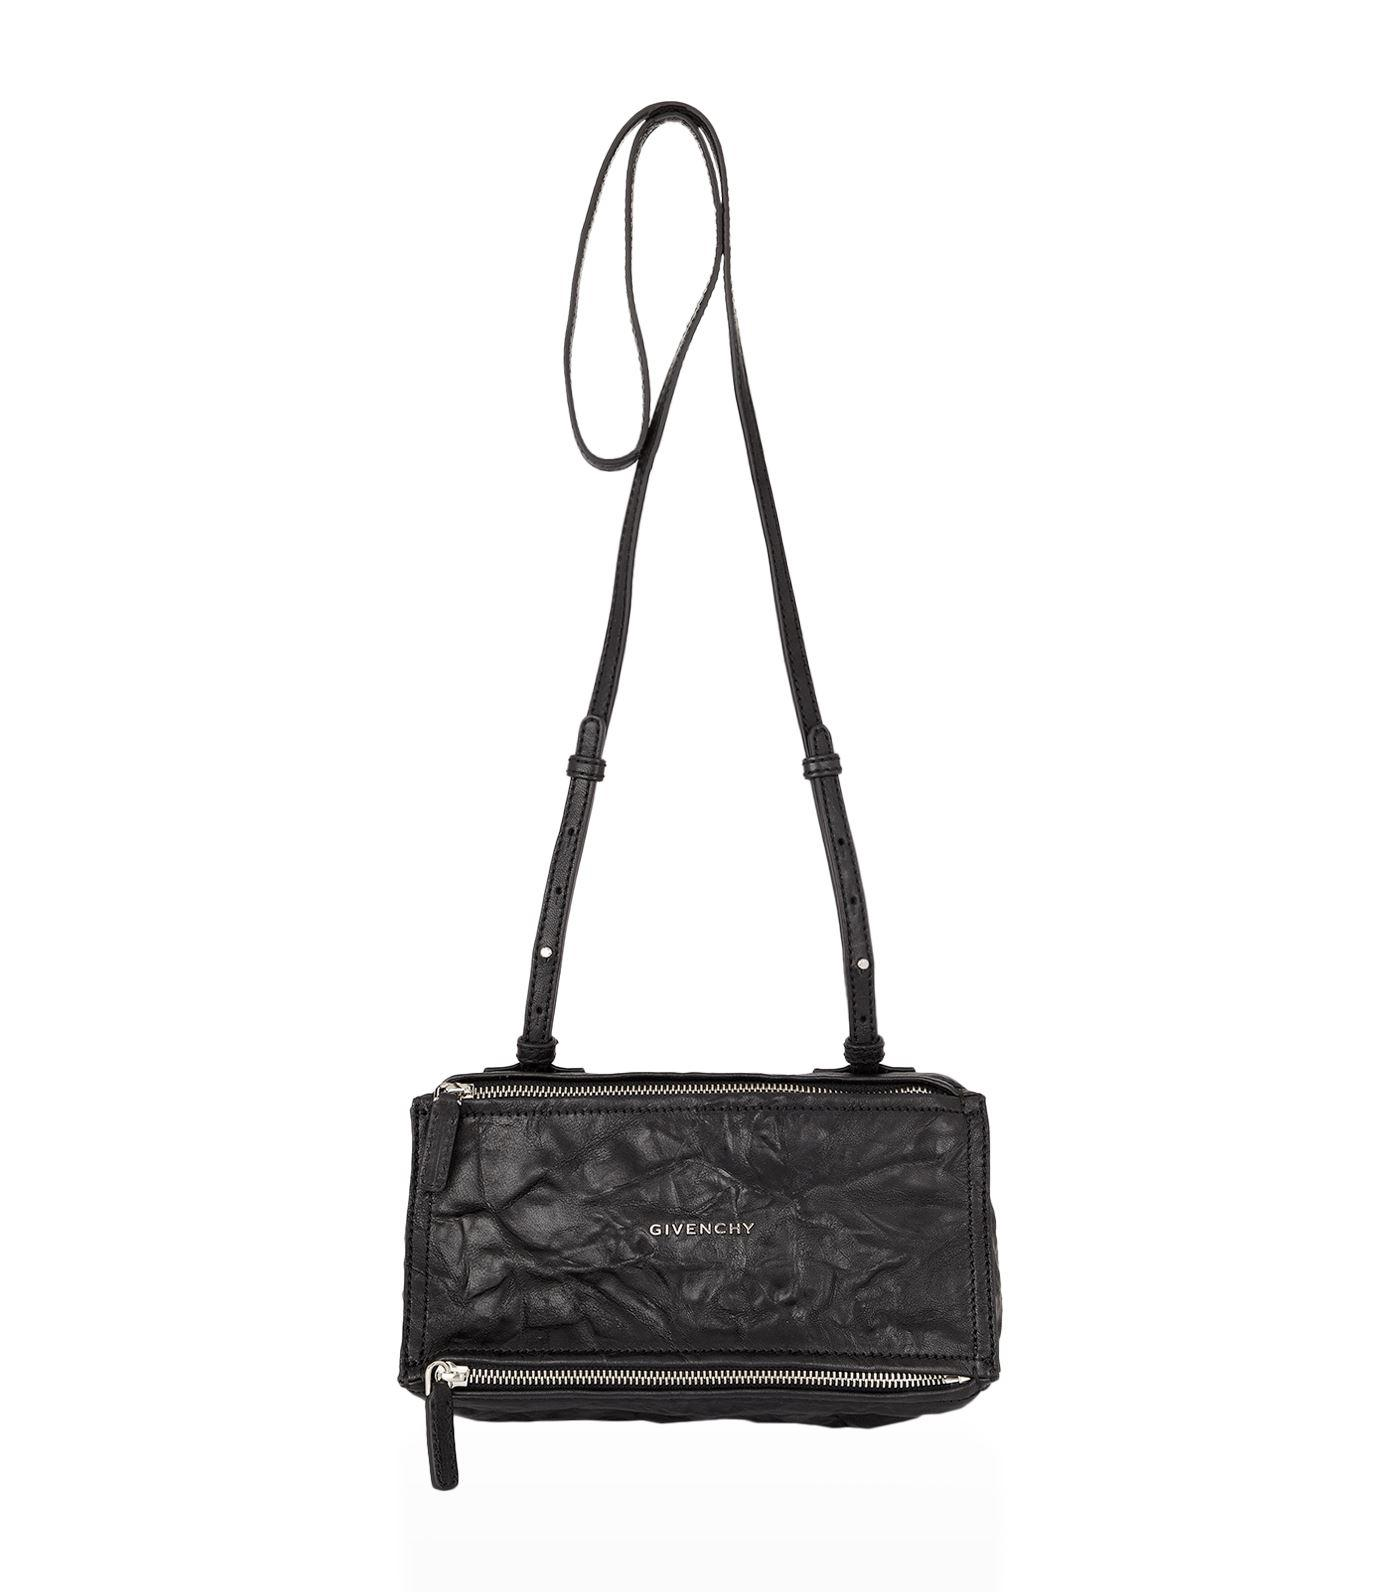 ad9495f136 Givenchy Mini Washed Leather Pandora Shoulder Bag in Black - Lyst